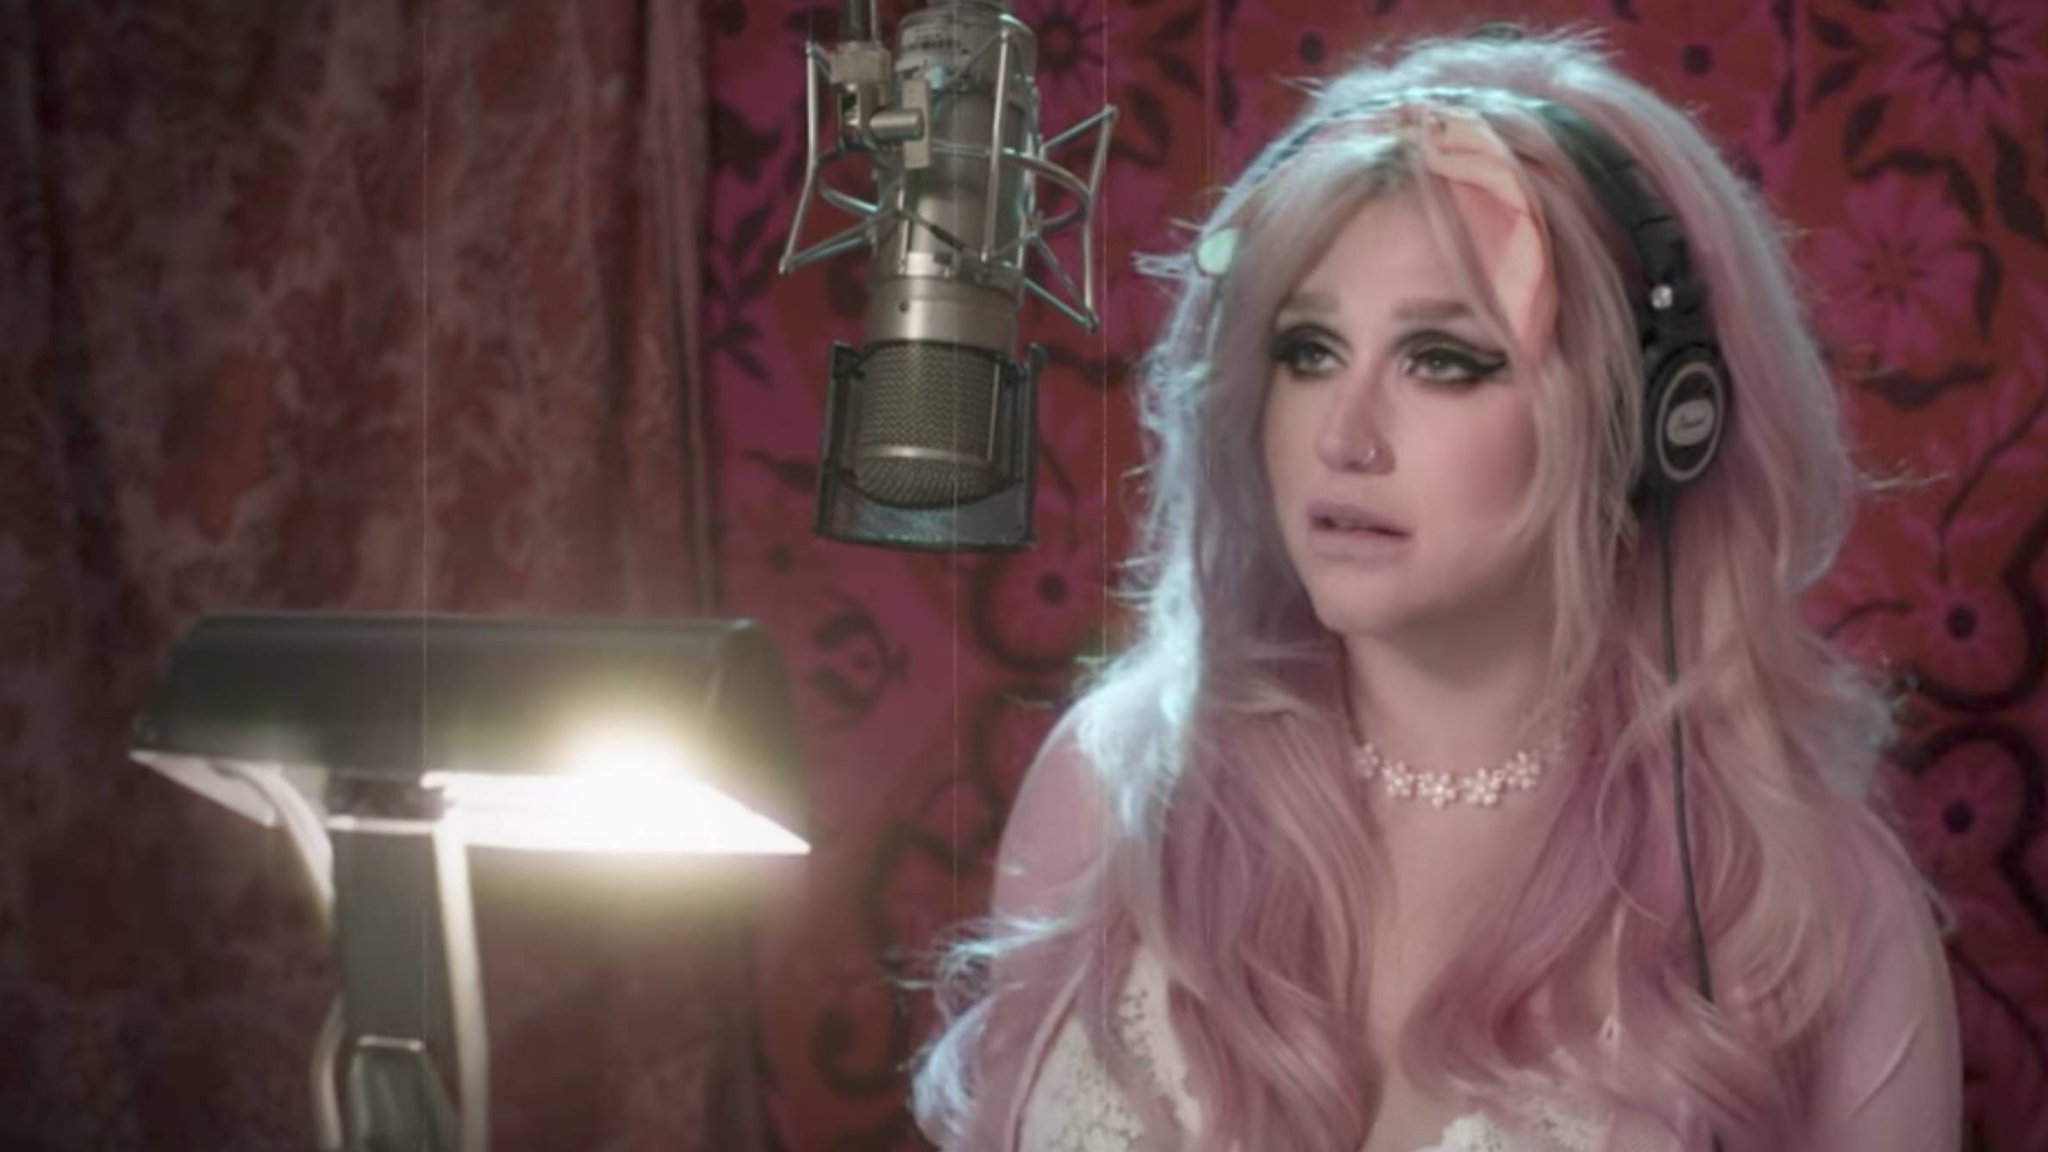 �� @KeshaRose's intimate 'Rainbow' video takes you inside her studio: https://t.co/2ItRFY4Rwd https://t.co/73IrPJ4XEd